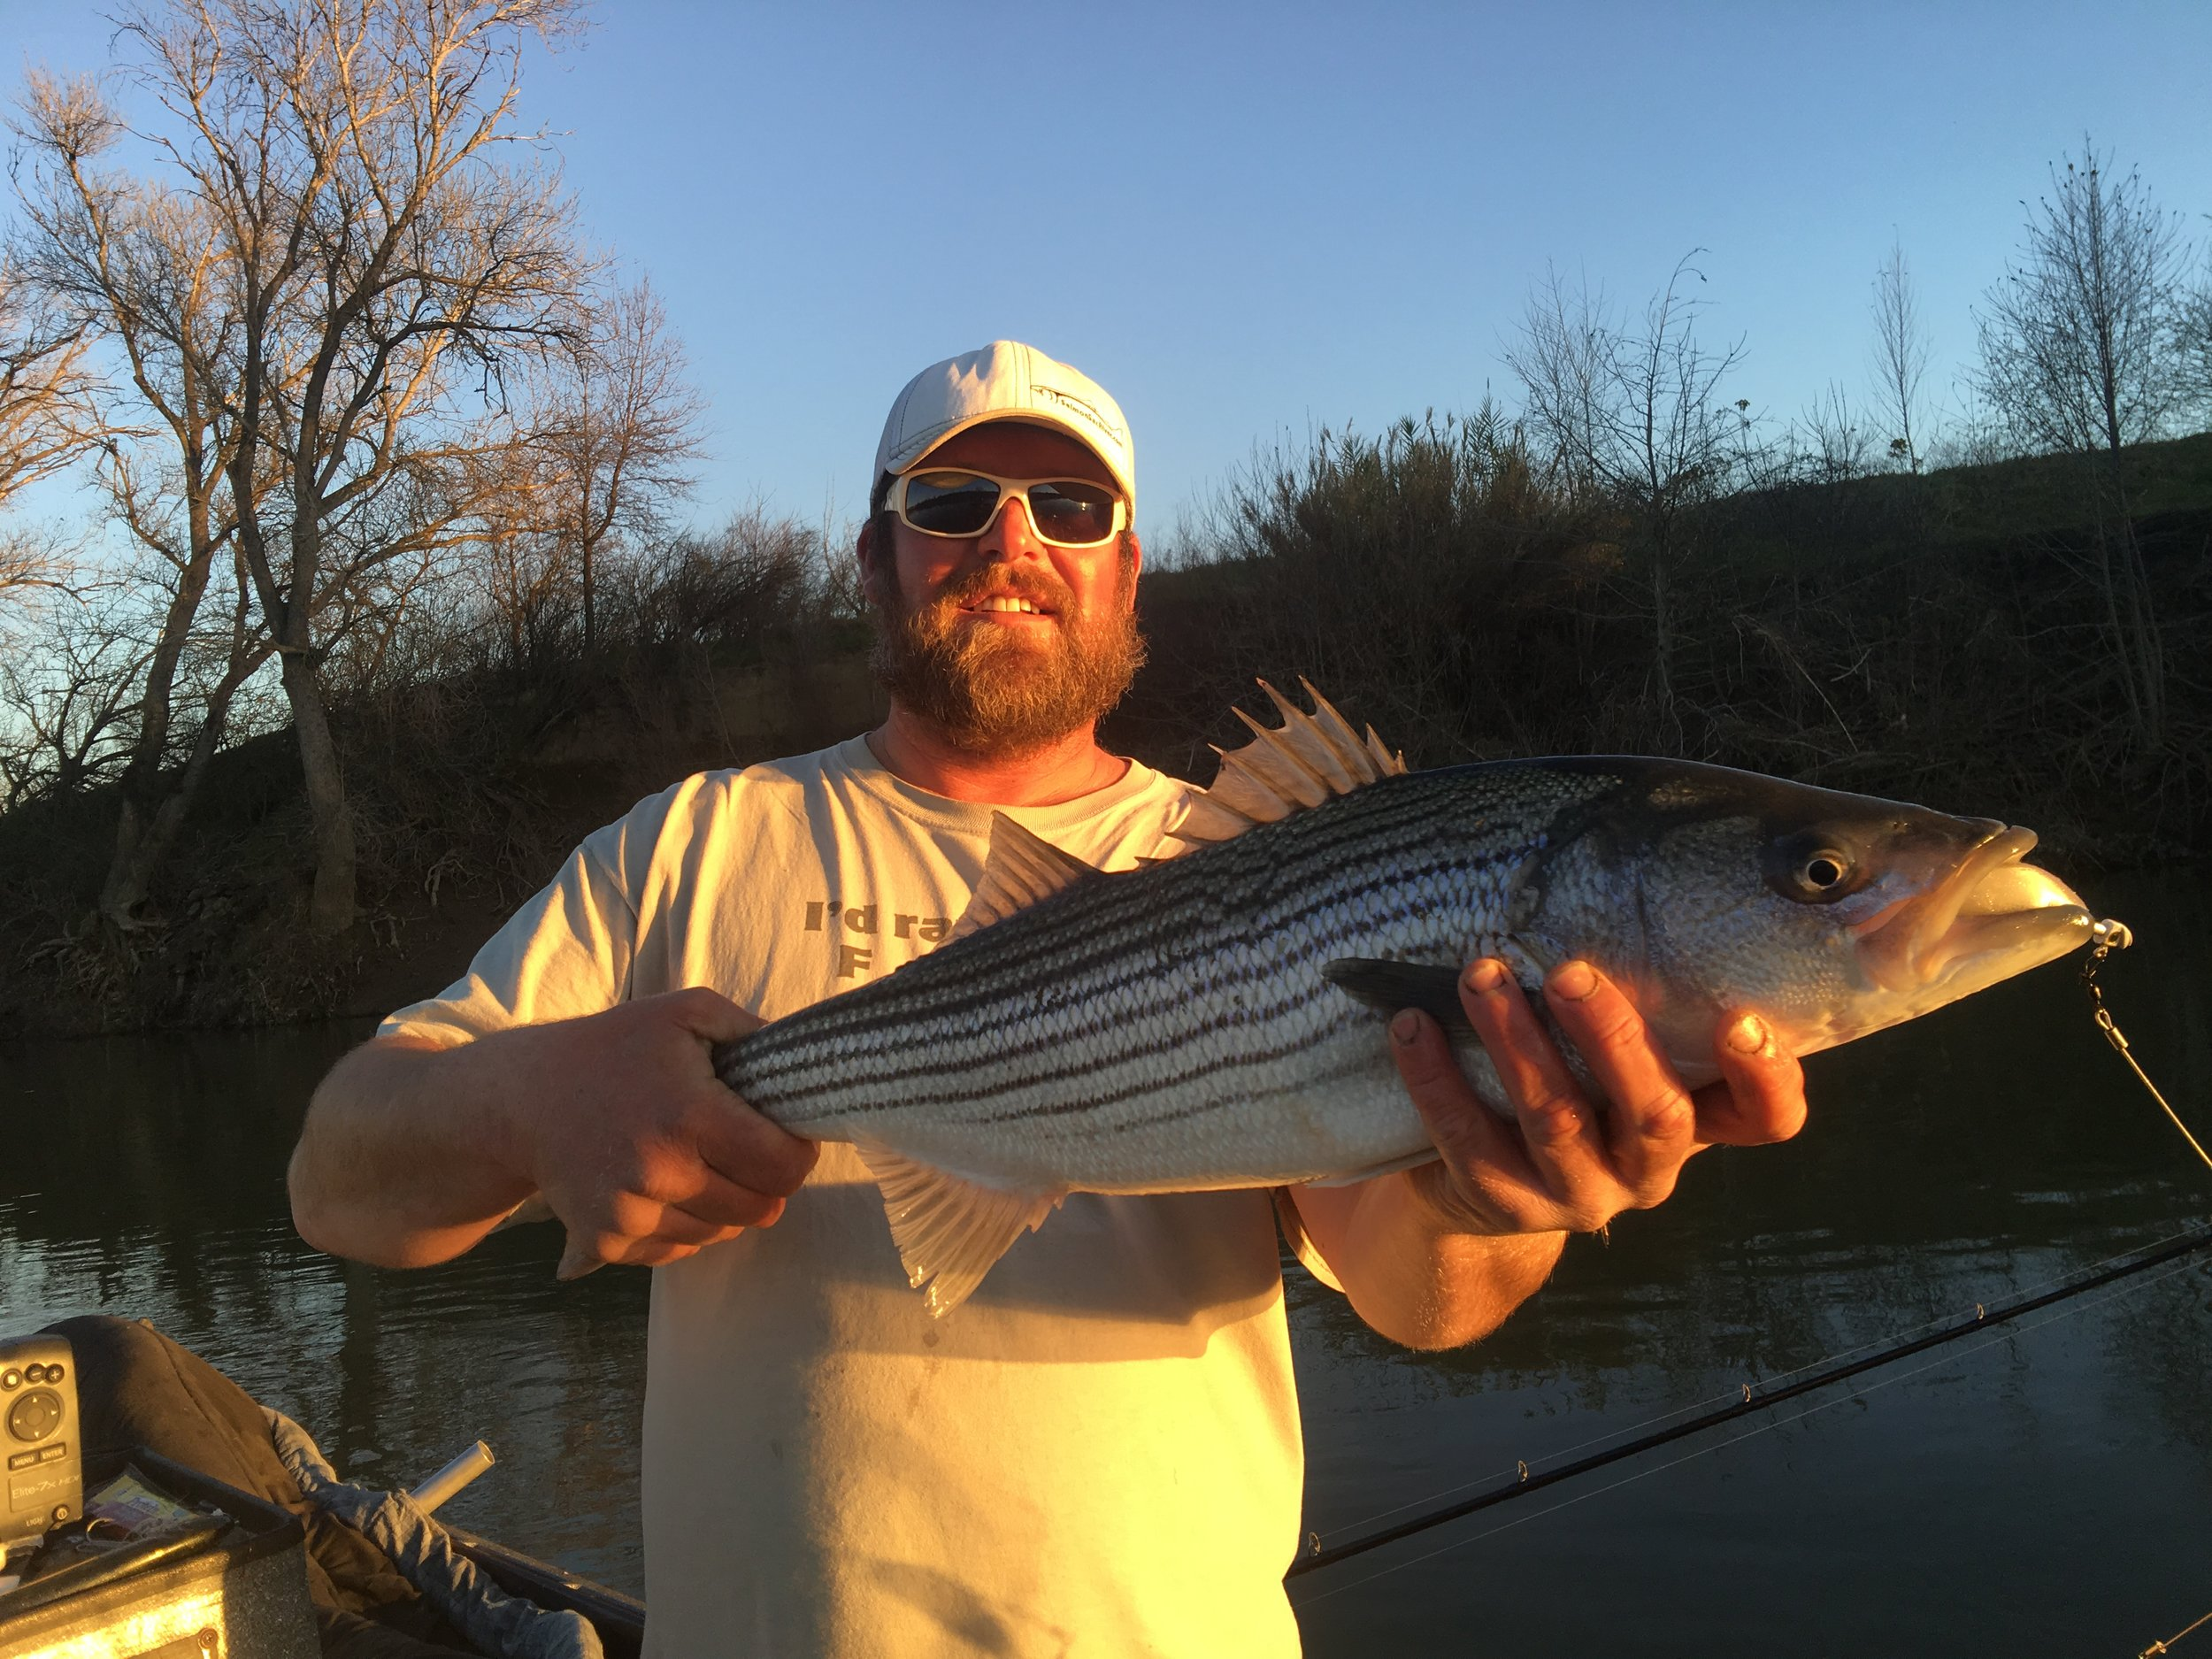 Striped Bass Fishing Guide Mike Rasmussen holds up a double digit striped bass he caught on December 30, 2016.   Mike's Fishing Guide & Charter Service For Sacramento River Fishing targeting King Salmon, Sockeye Salmon, Striped Bass, Sturgeon, Shad And Trout the best Sacramento River Fishing guide and Sacramento River Charter on Sac River  Mike's Fishing Guide & Charter Service For Sacramento River Fishing targeting King Salmon, Sockeye Salmon, Striped Bass, Sturgeon, Shad And Trout the best Sacramento River Fishing guide and Sacramento River Charter on Sac River